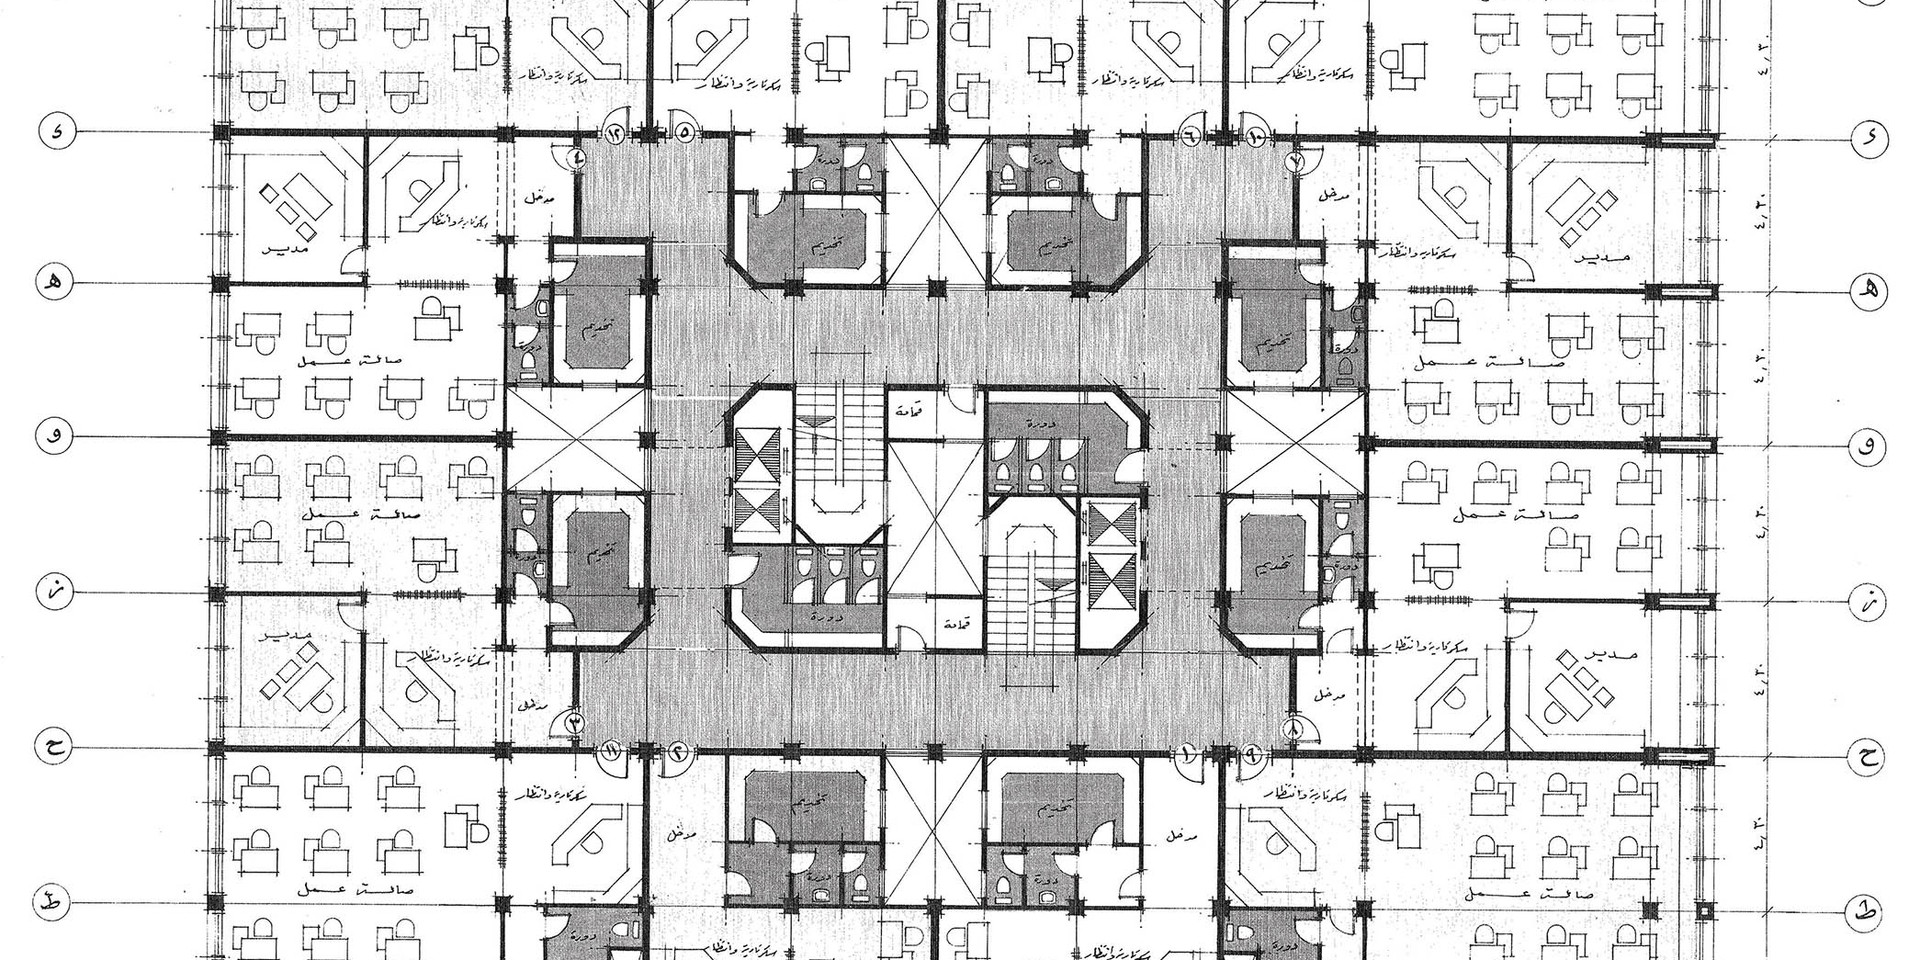 Misr Insurance Giza Mixed Use Building Typical Office Plan